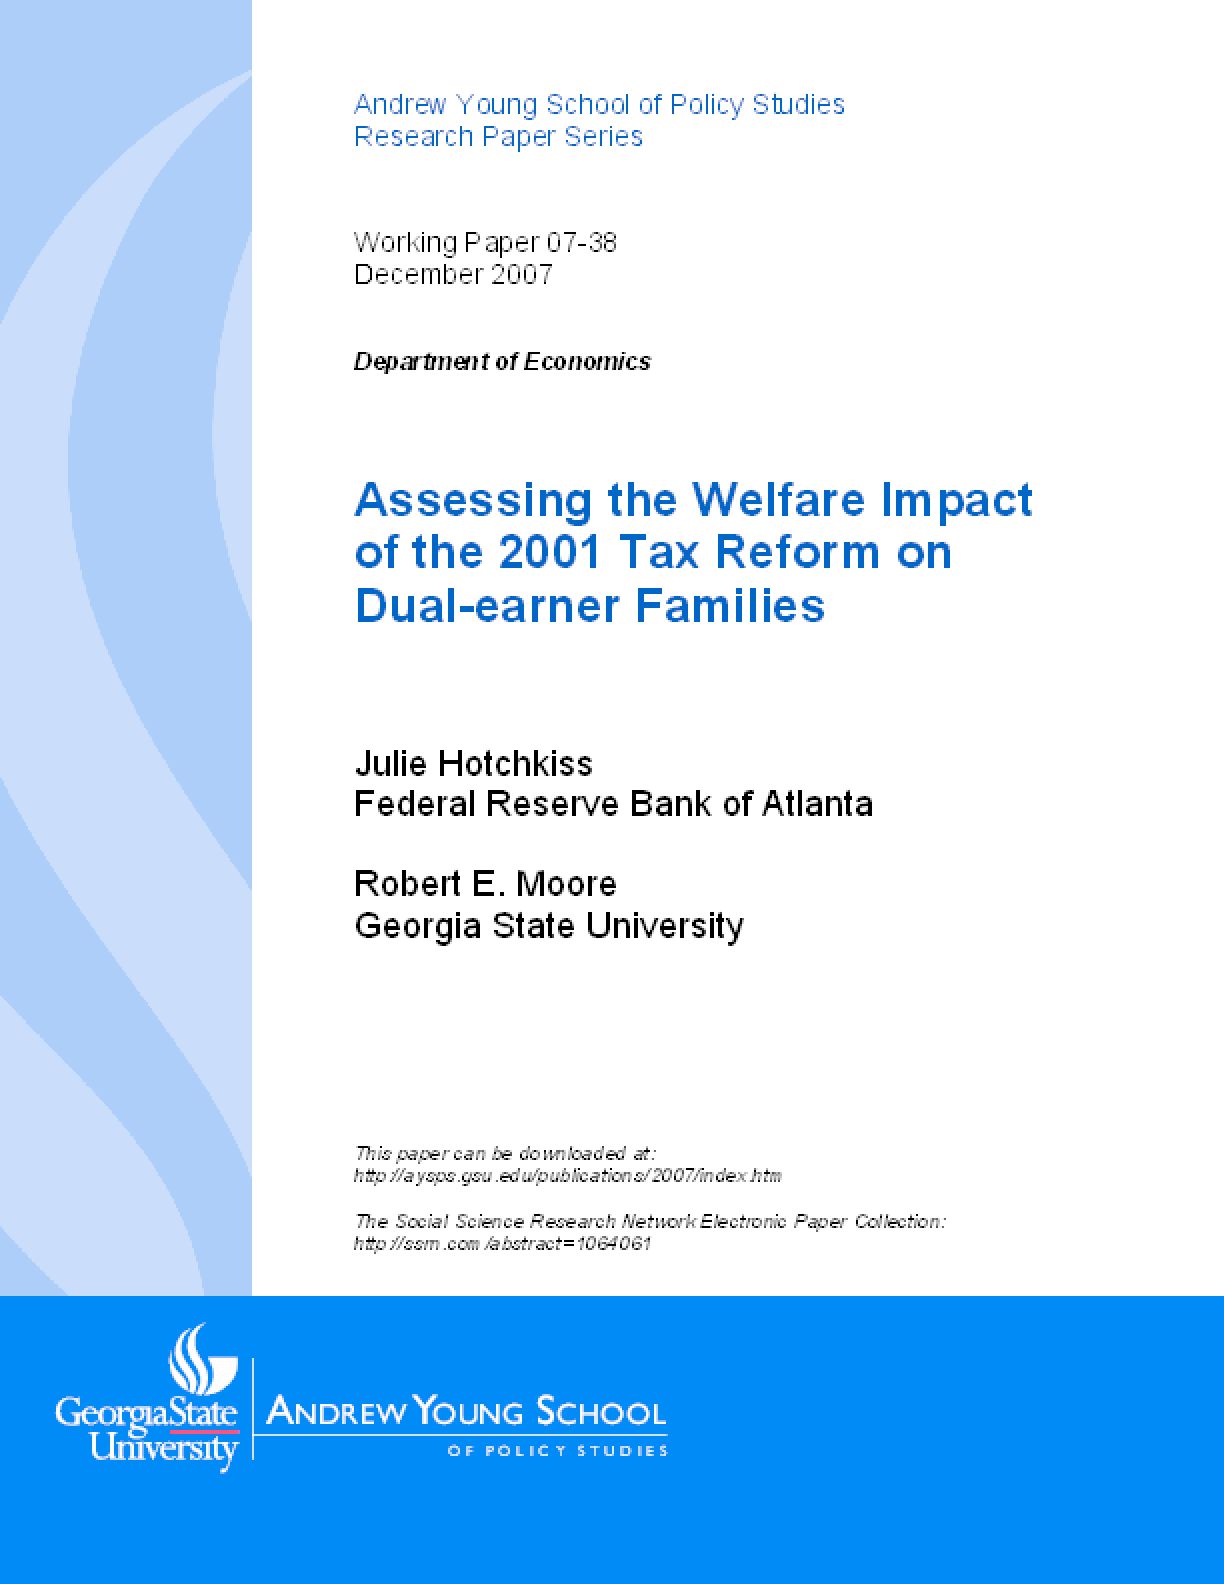 Assessing the Welfare Impact of the 2001 Tax Reform on Dual-earner Families